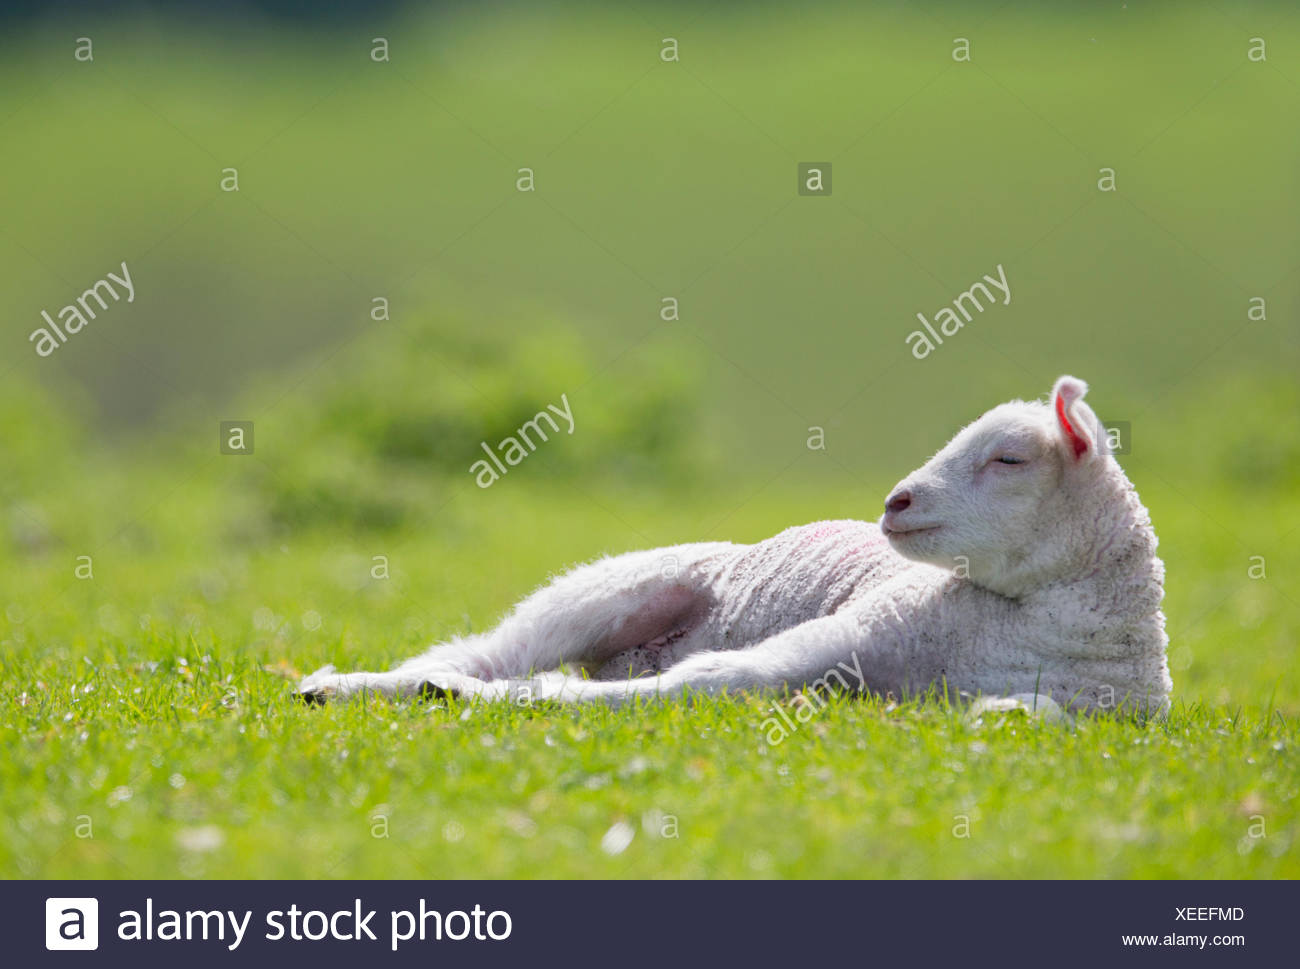 Tired lamb laying in sunny green spring field - Stock Image